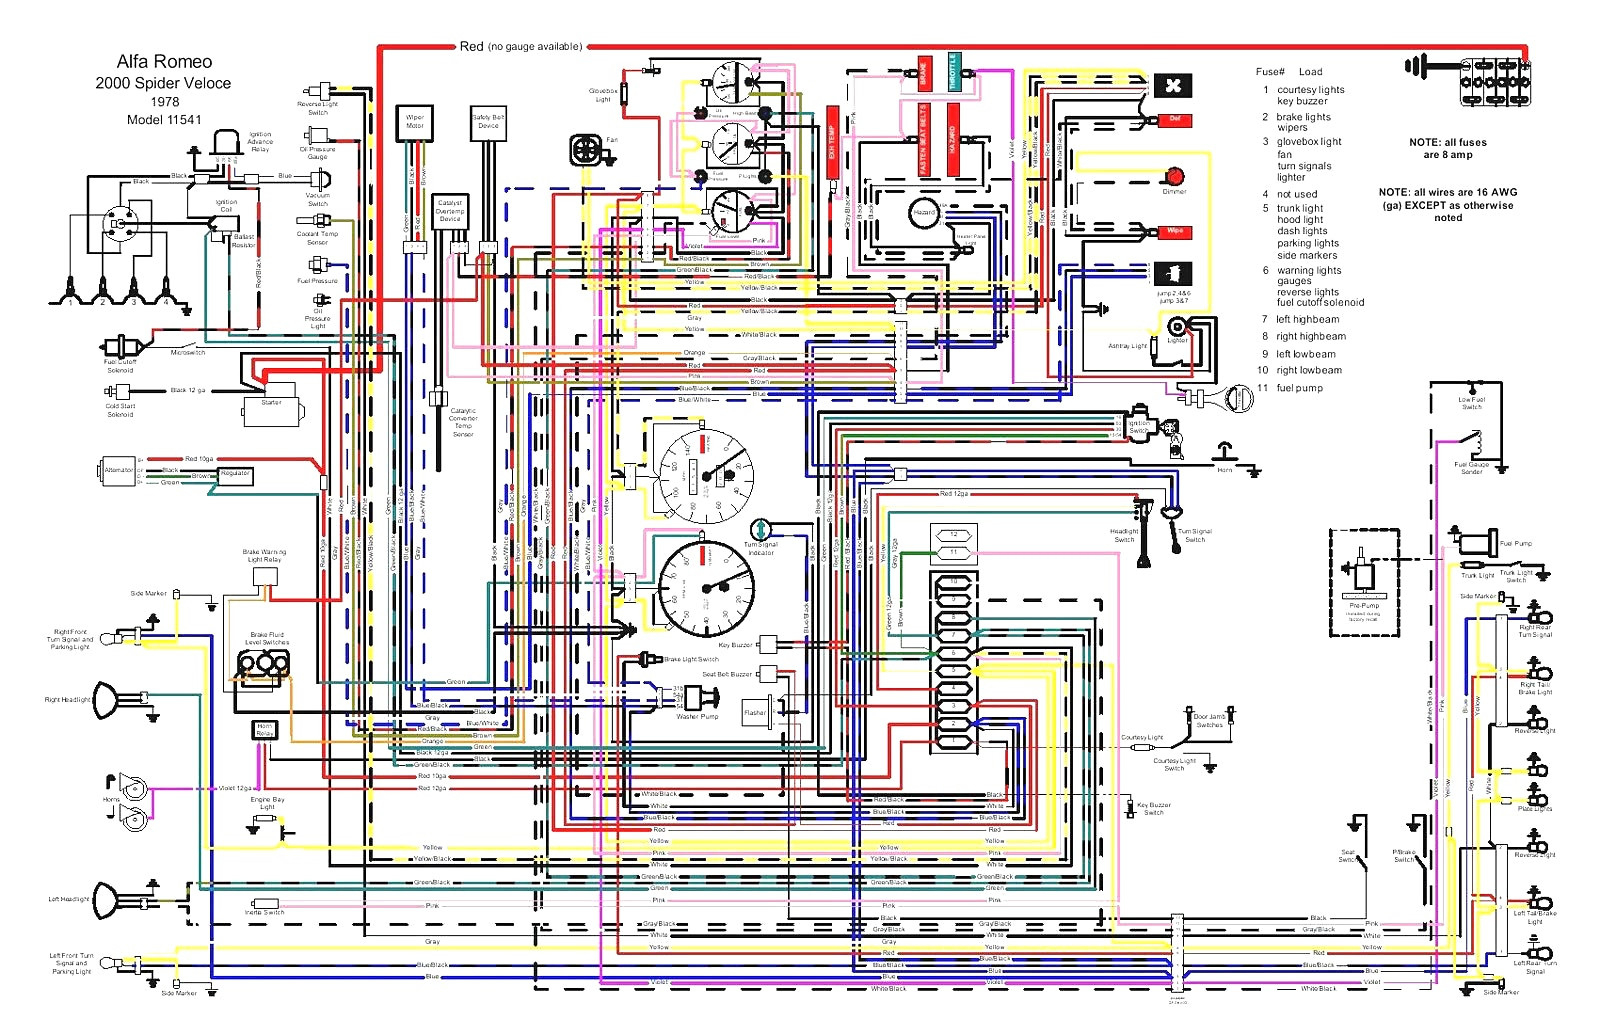 Car Wiring Diagram Program | Wiring Diagram - Wiring Diagram Maker